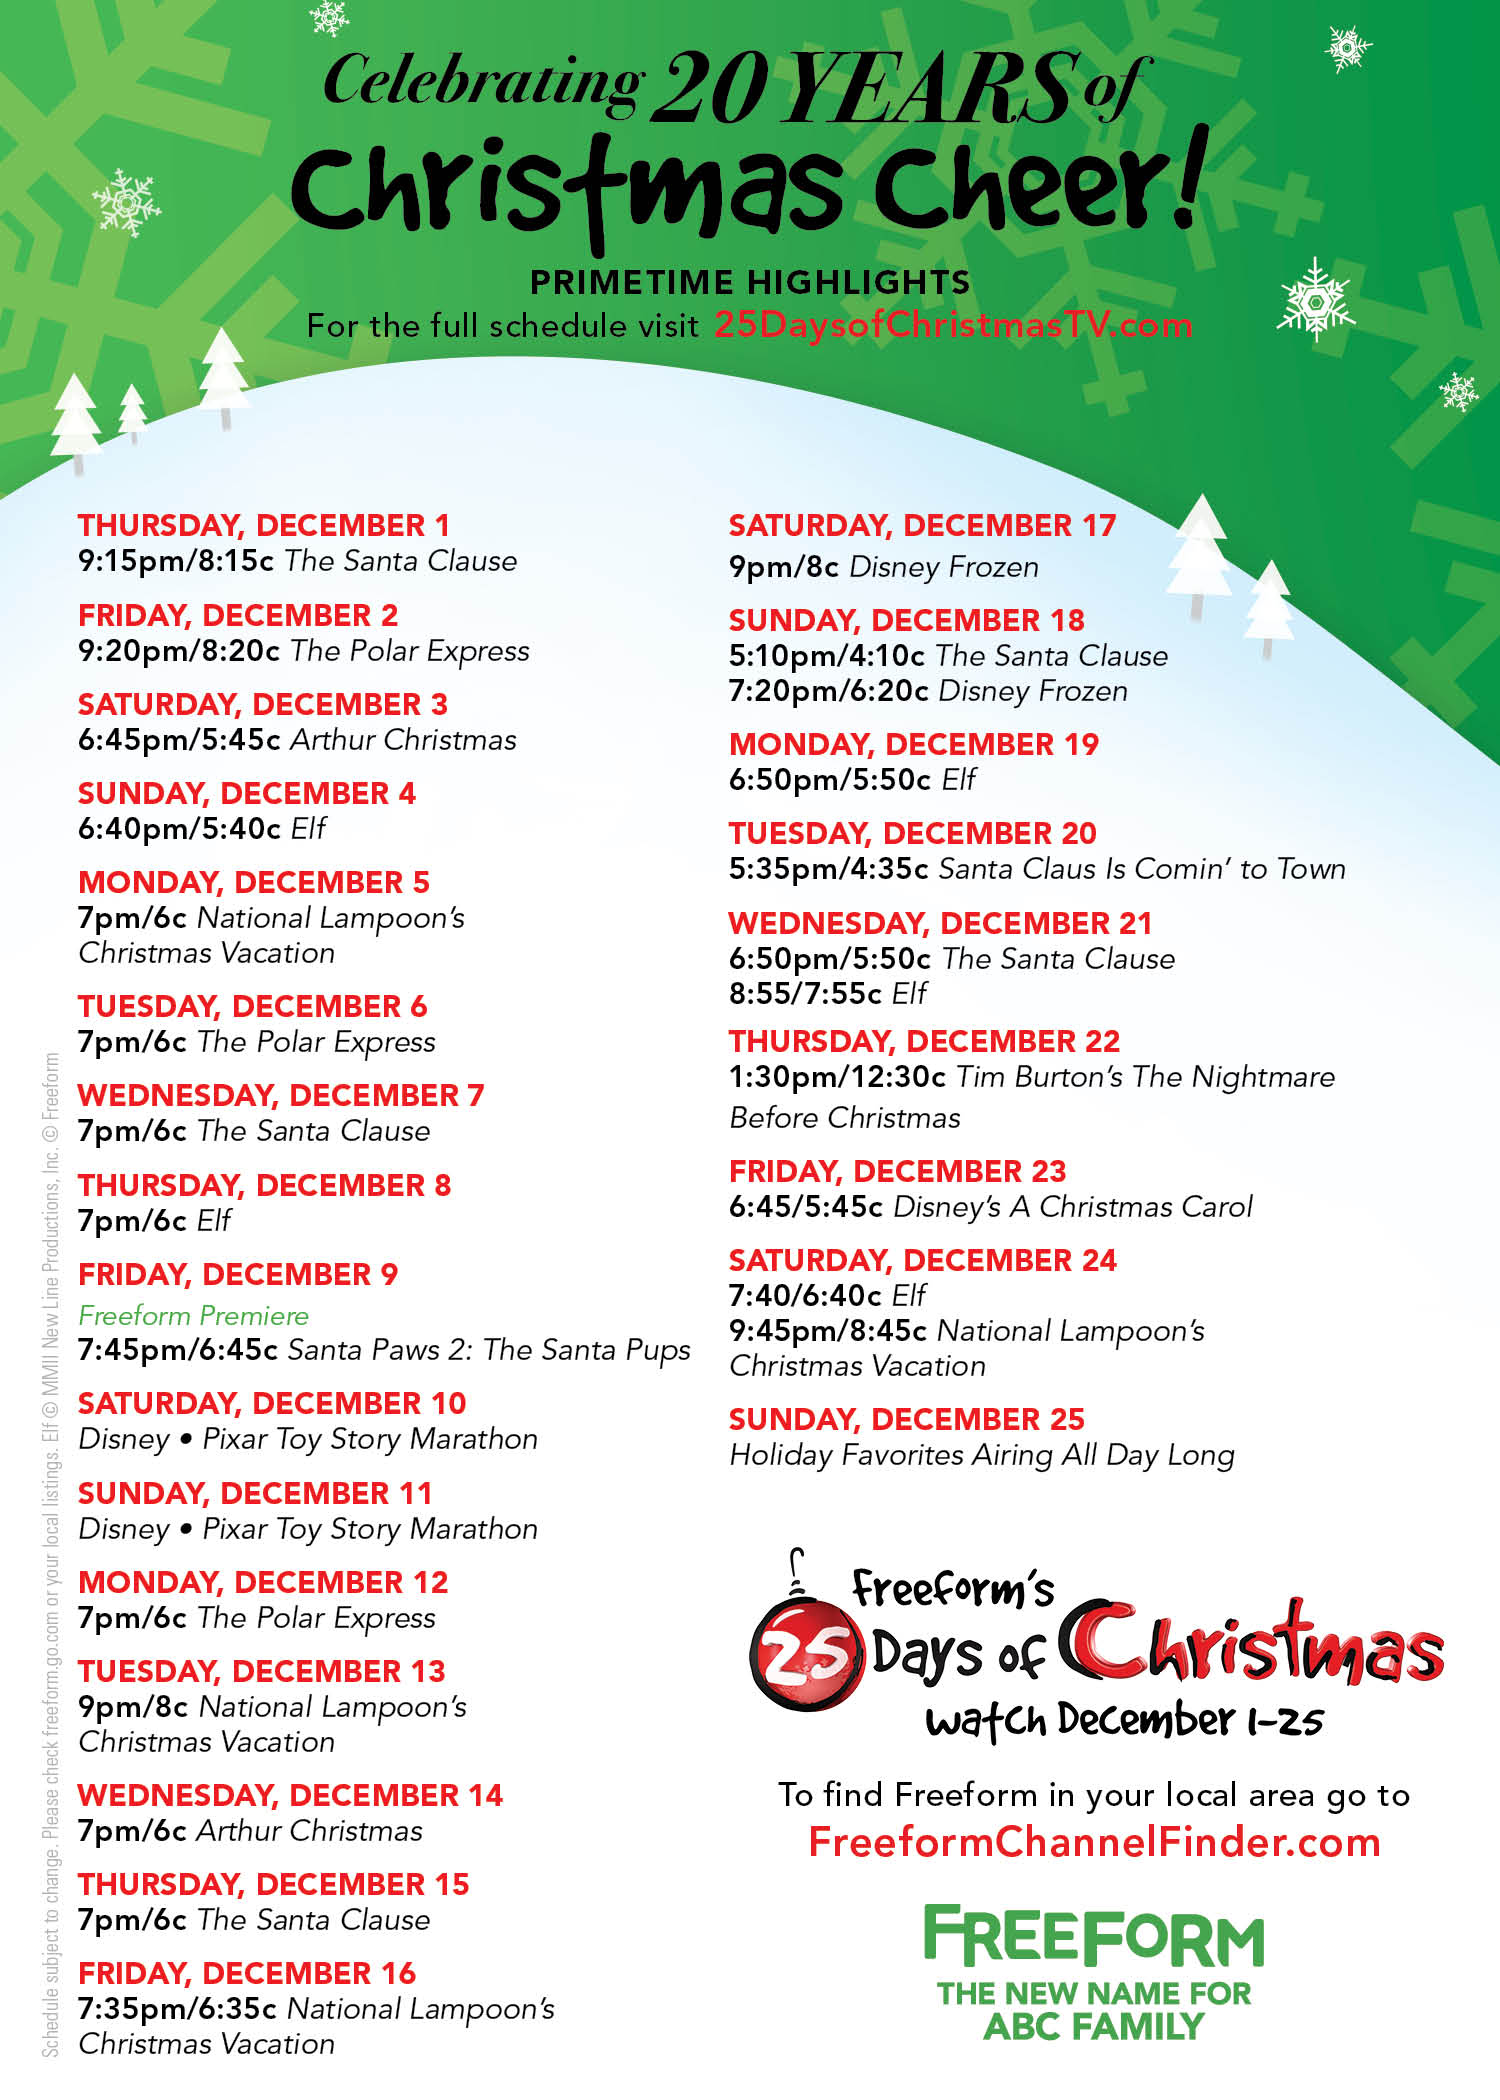 ready for 25 days of christmas check out the official